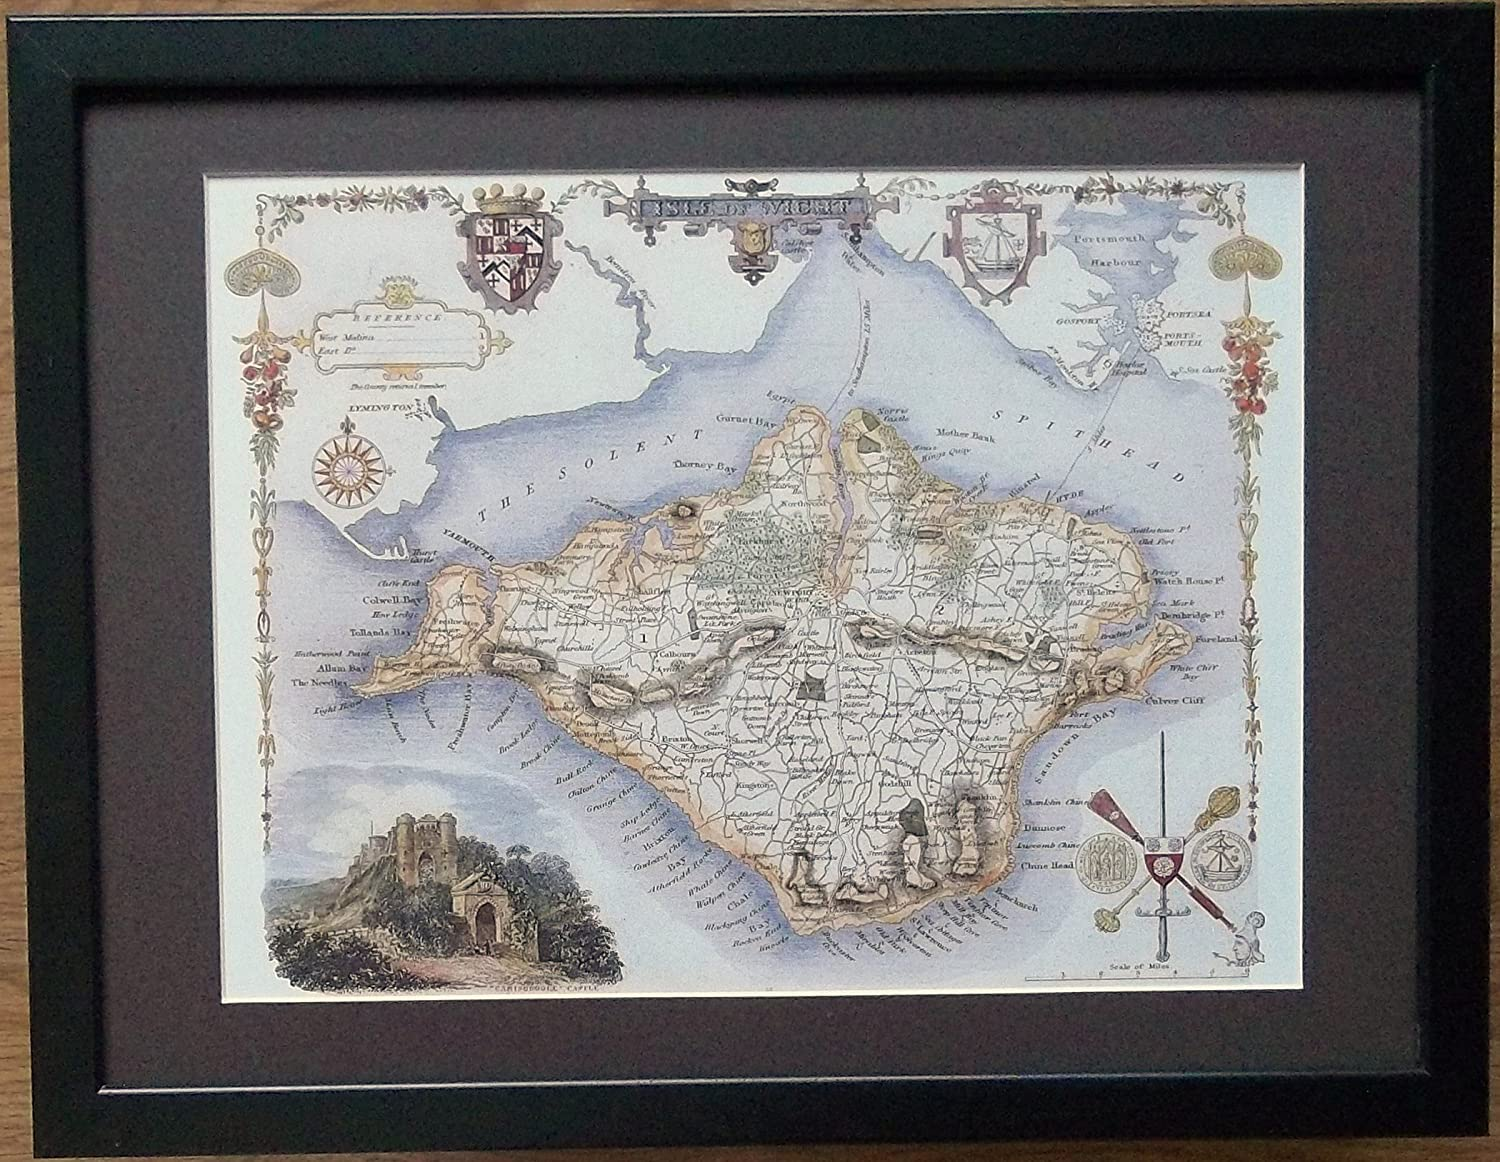 Framed and Mounted County Map - 12'' x 16'' frame, Isle of White Map framed print